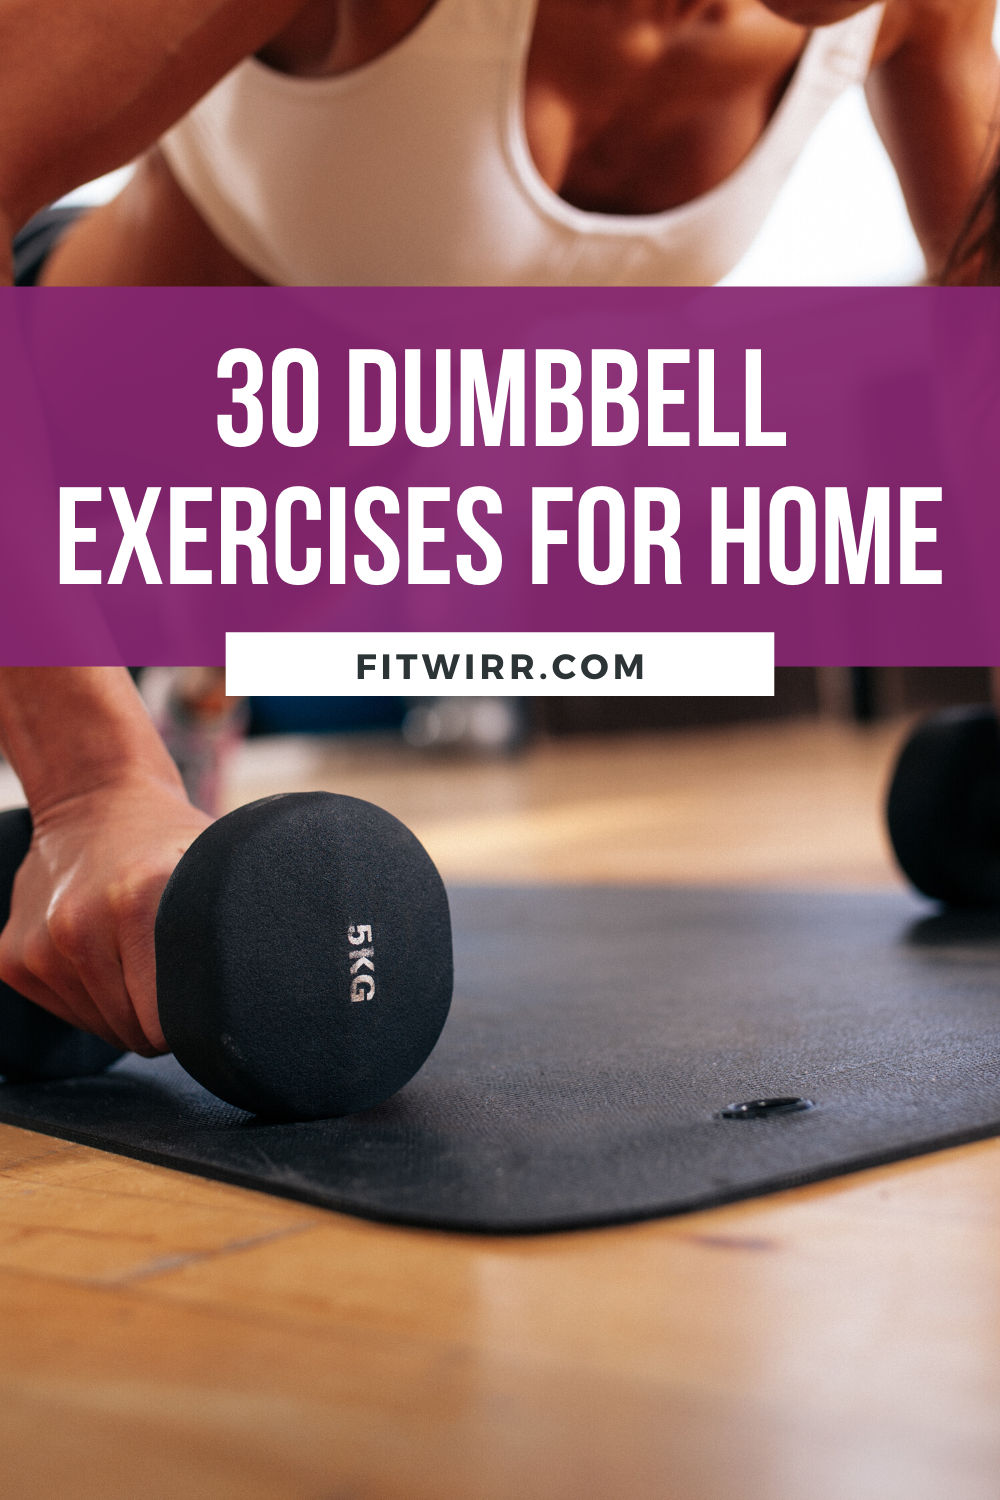 30 Best Dumbbell Exercises for at Home Workouts - Fitwirr